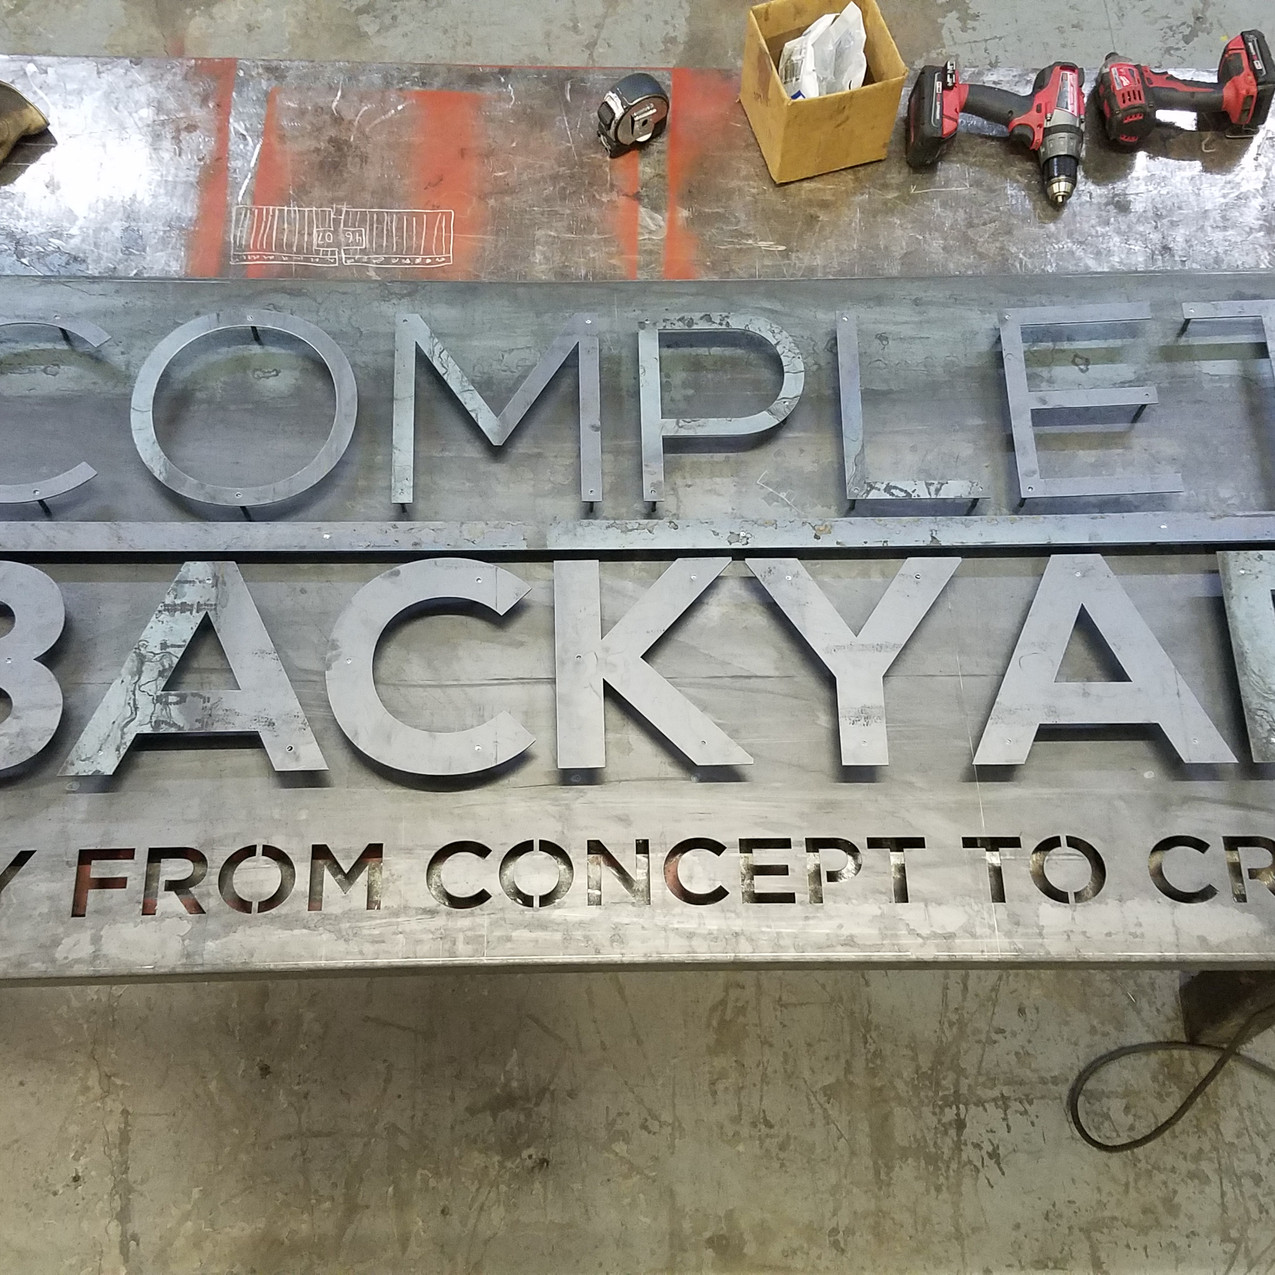 The Complete Backyard sign